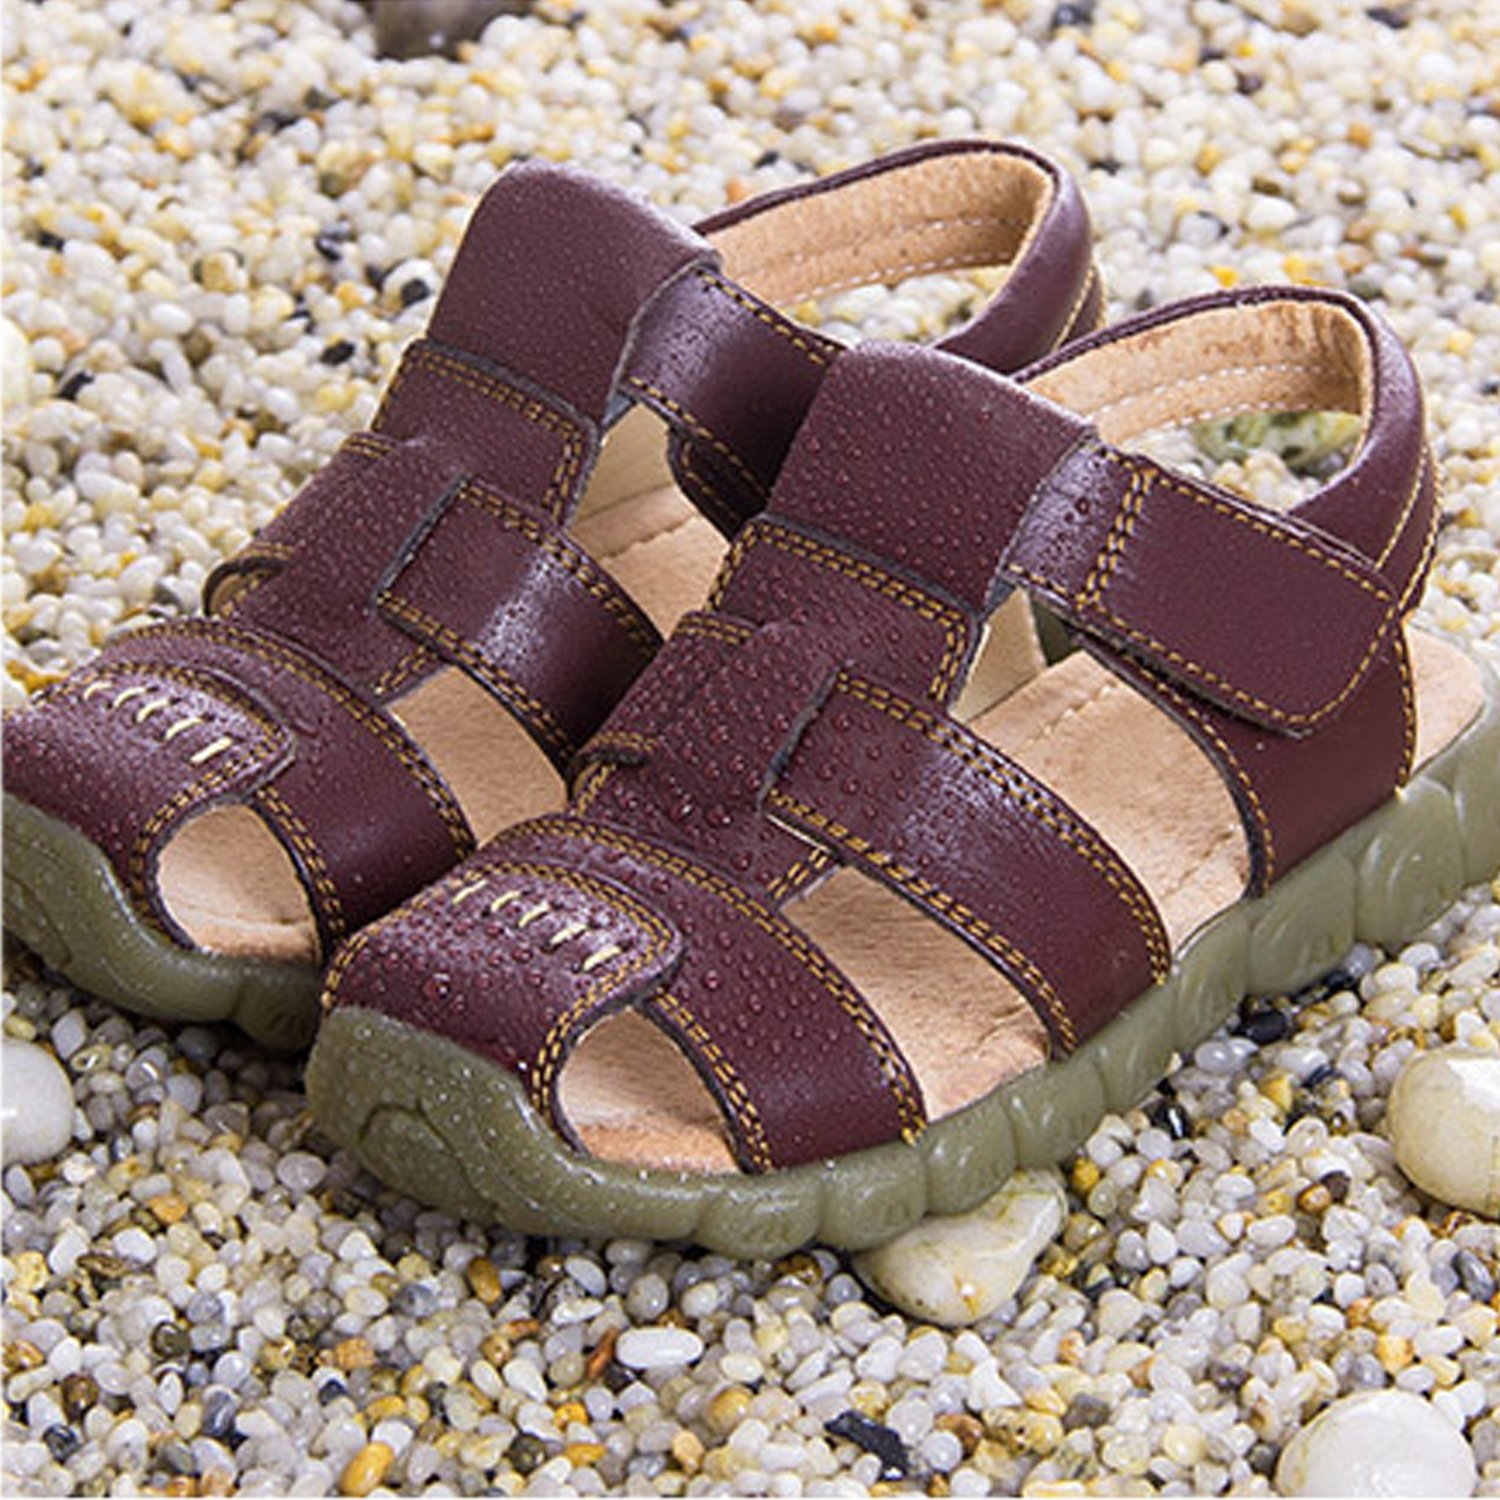 Infant Toddler Baby Boys Girls Leather Closed Toe Outdoor Sports Flat Shoes Summer Casual Sandals